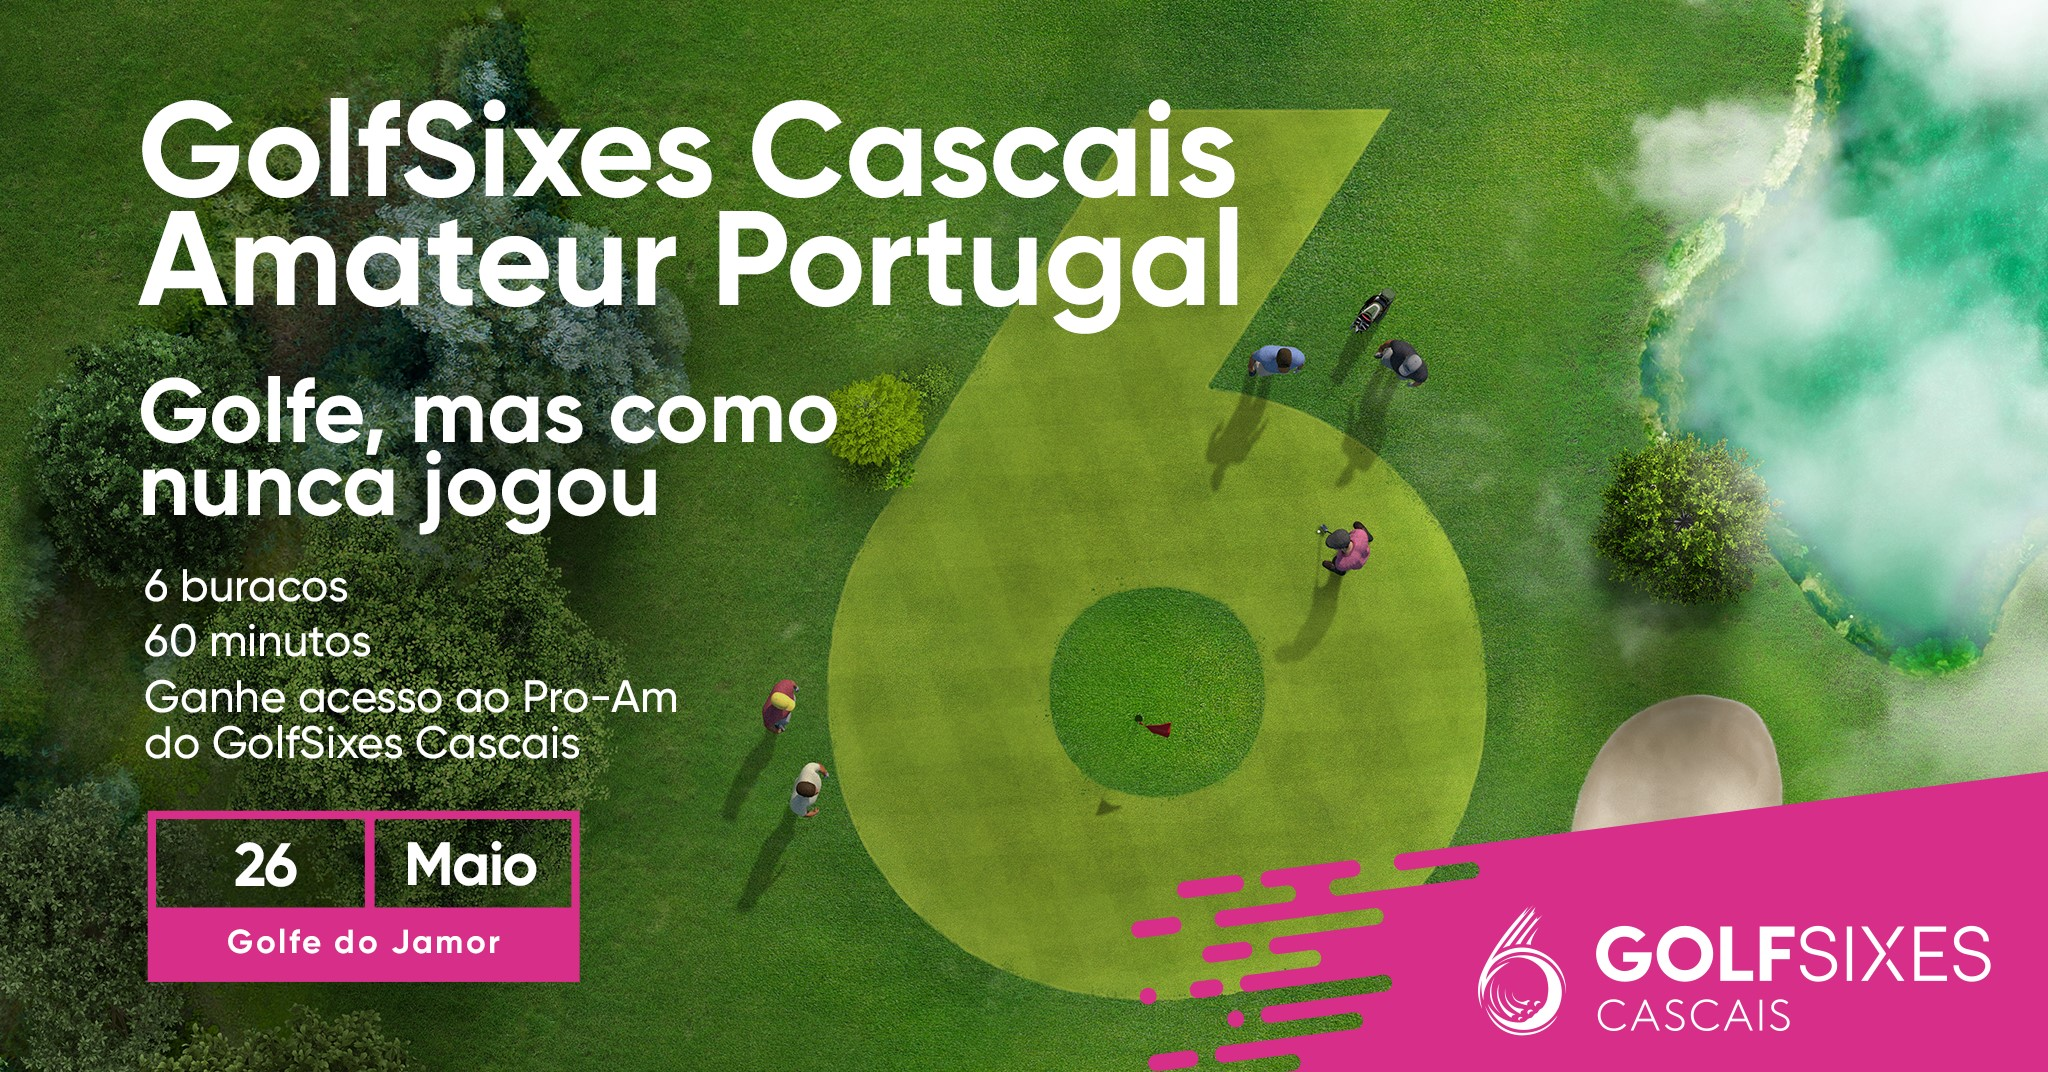 GOLF SIXIES CASCAIS